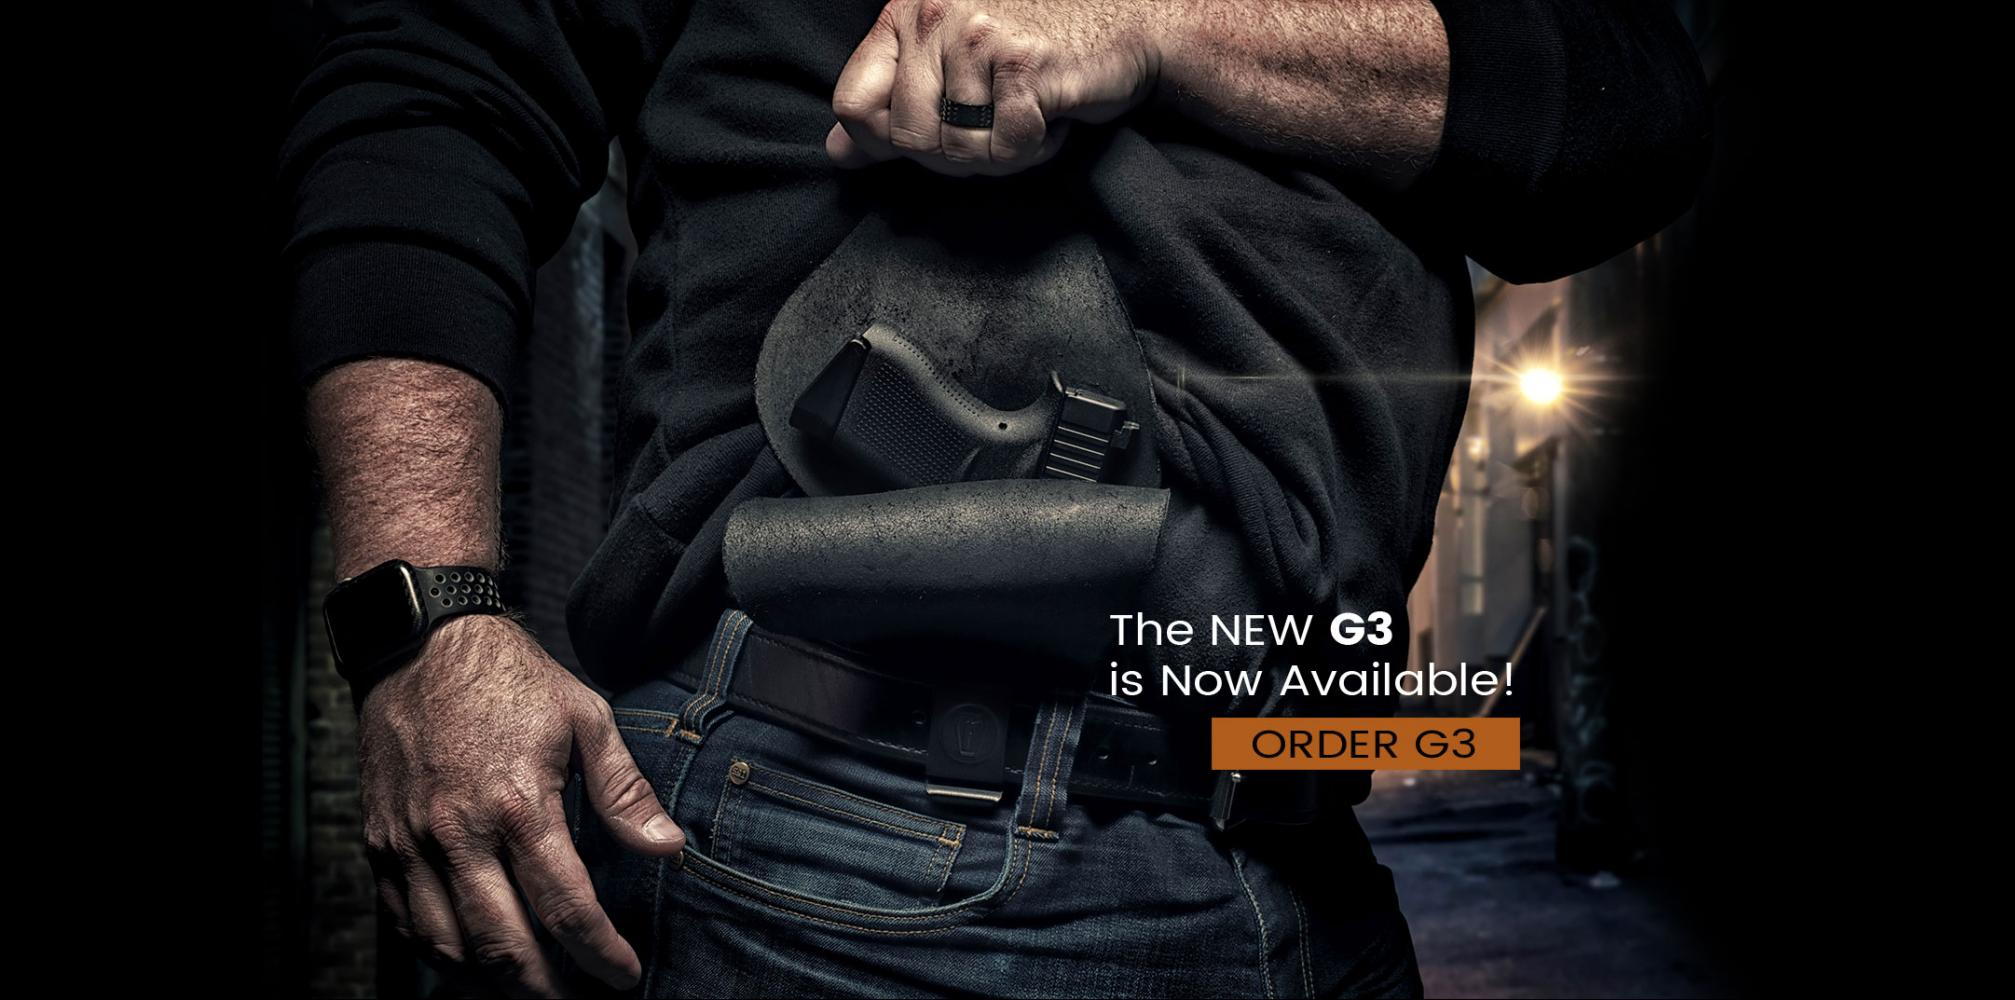 Order G3 NOW